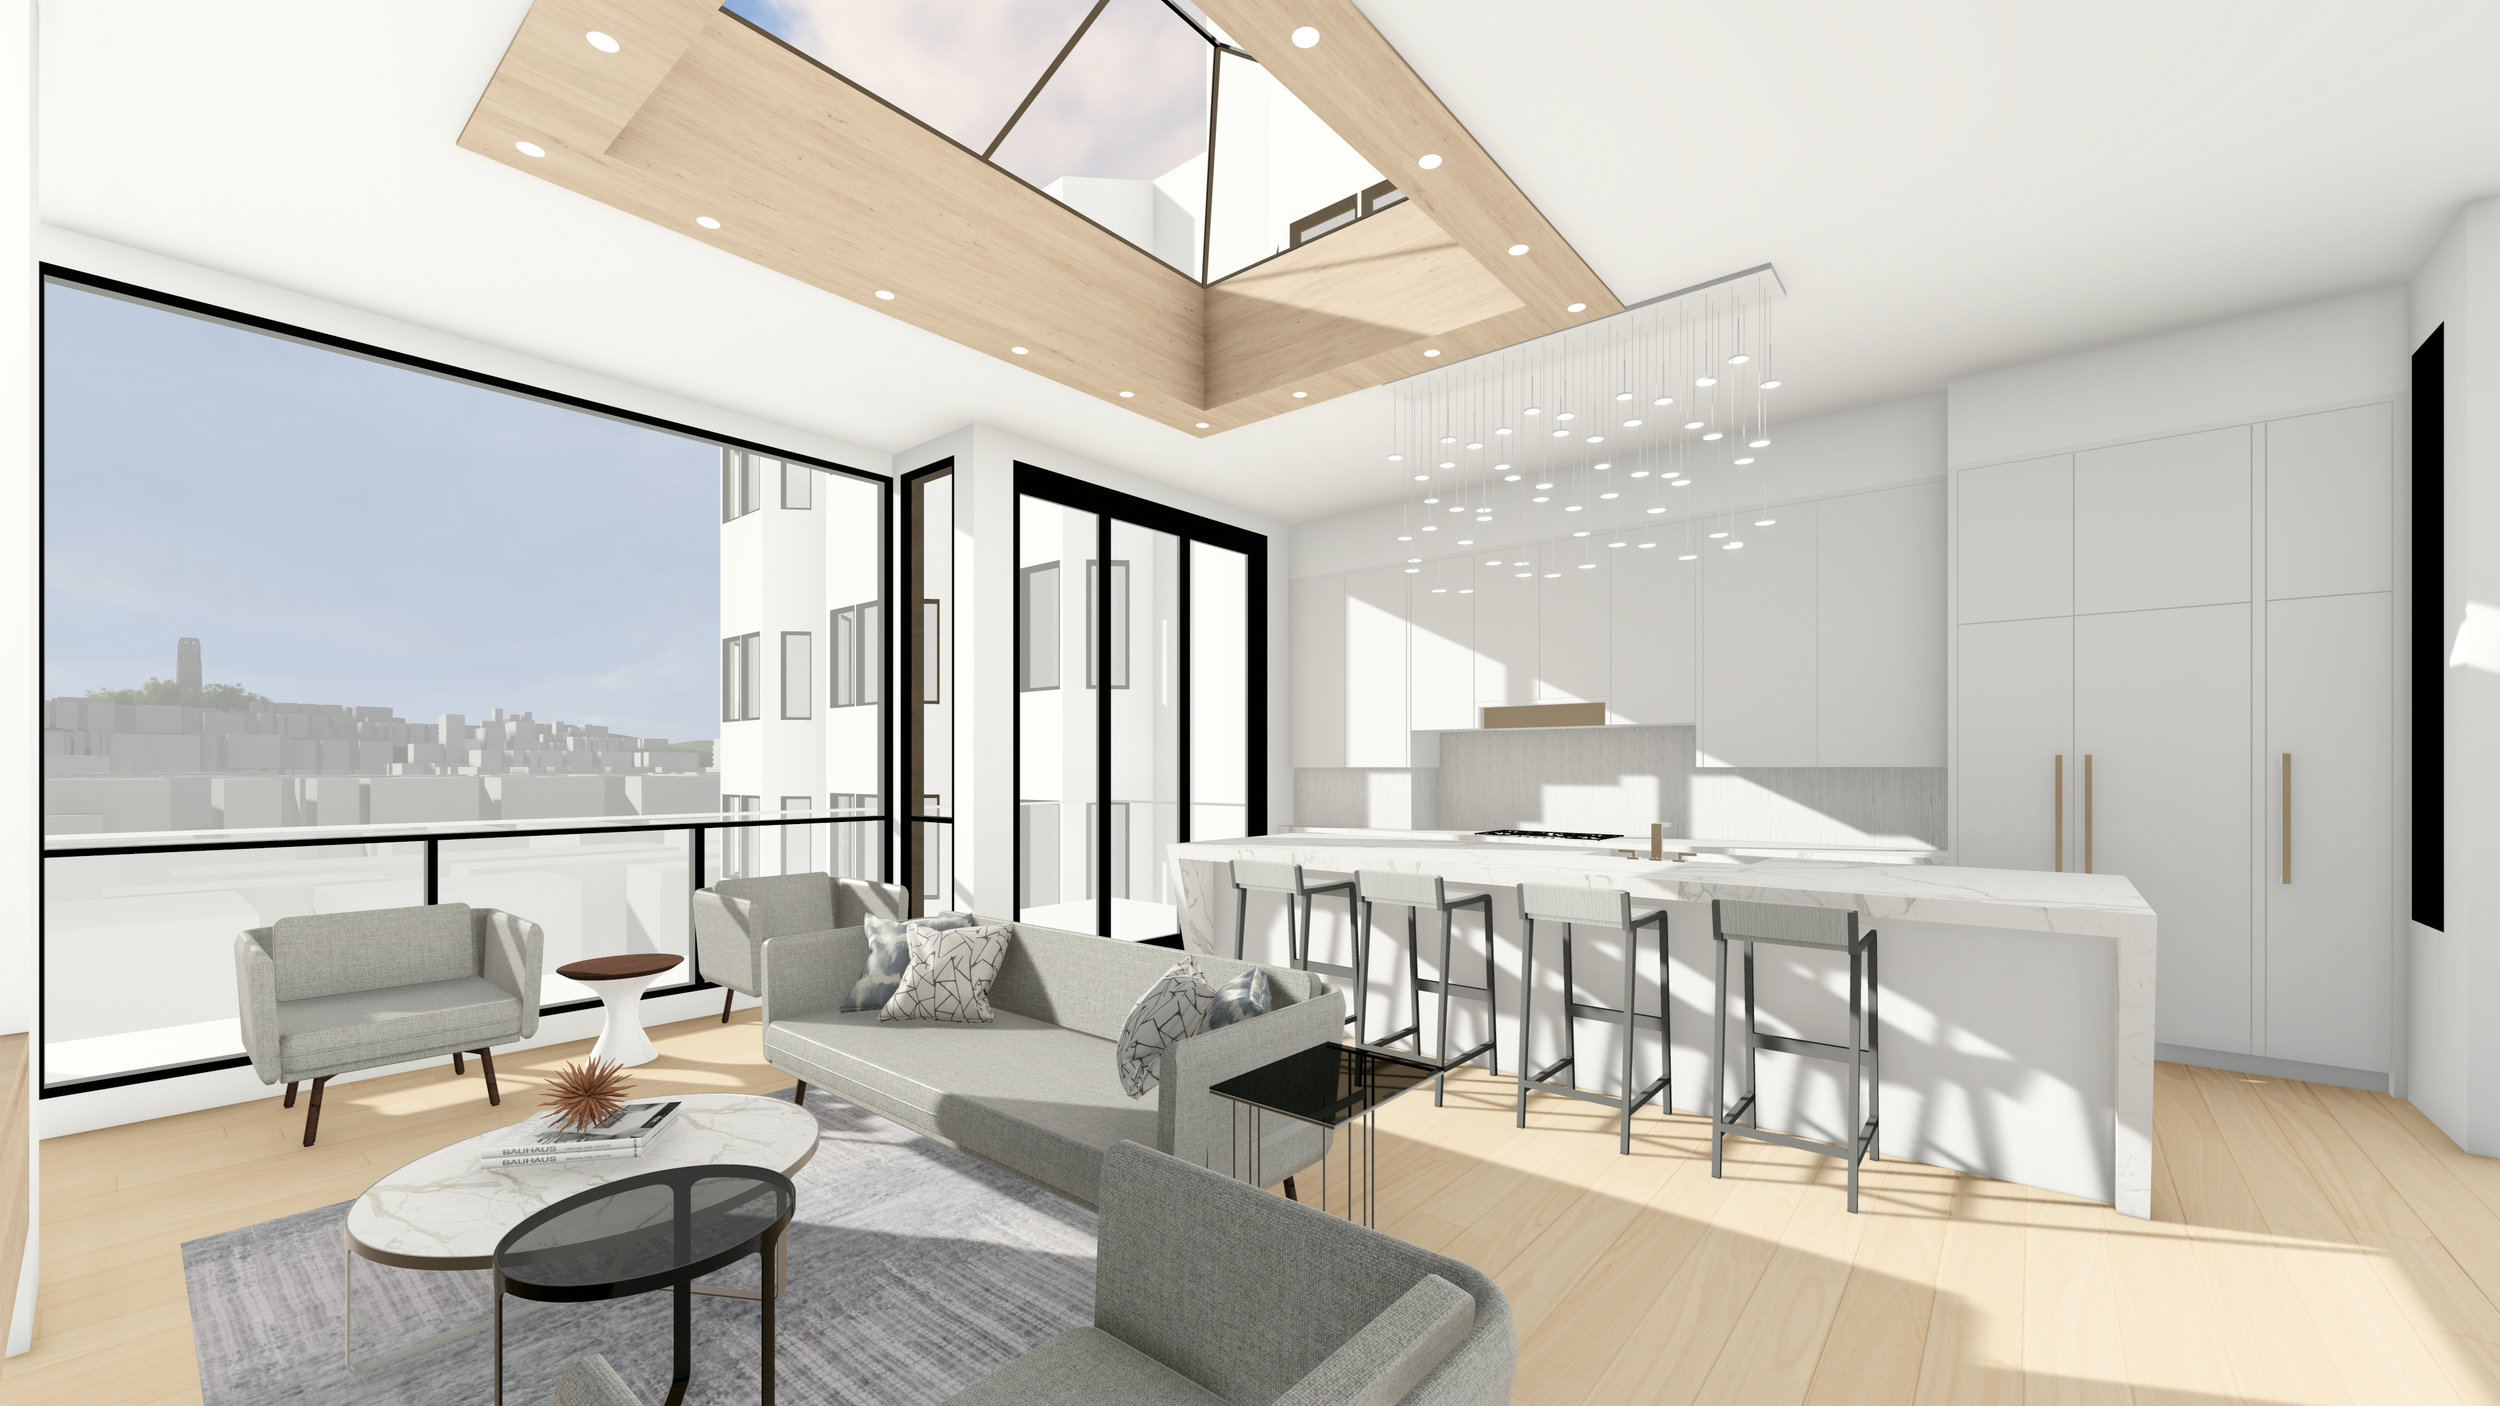 2028-2030 Leavenworth Street - RENDERS - KITCHEN_3_080217.jpg